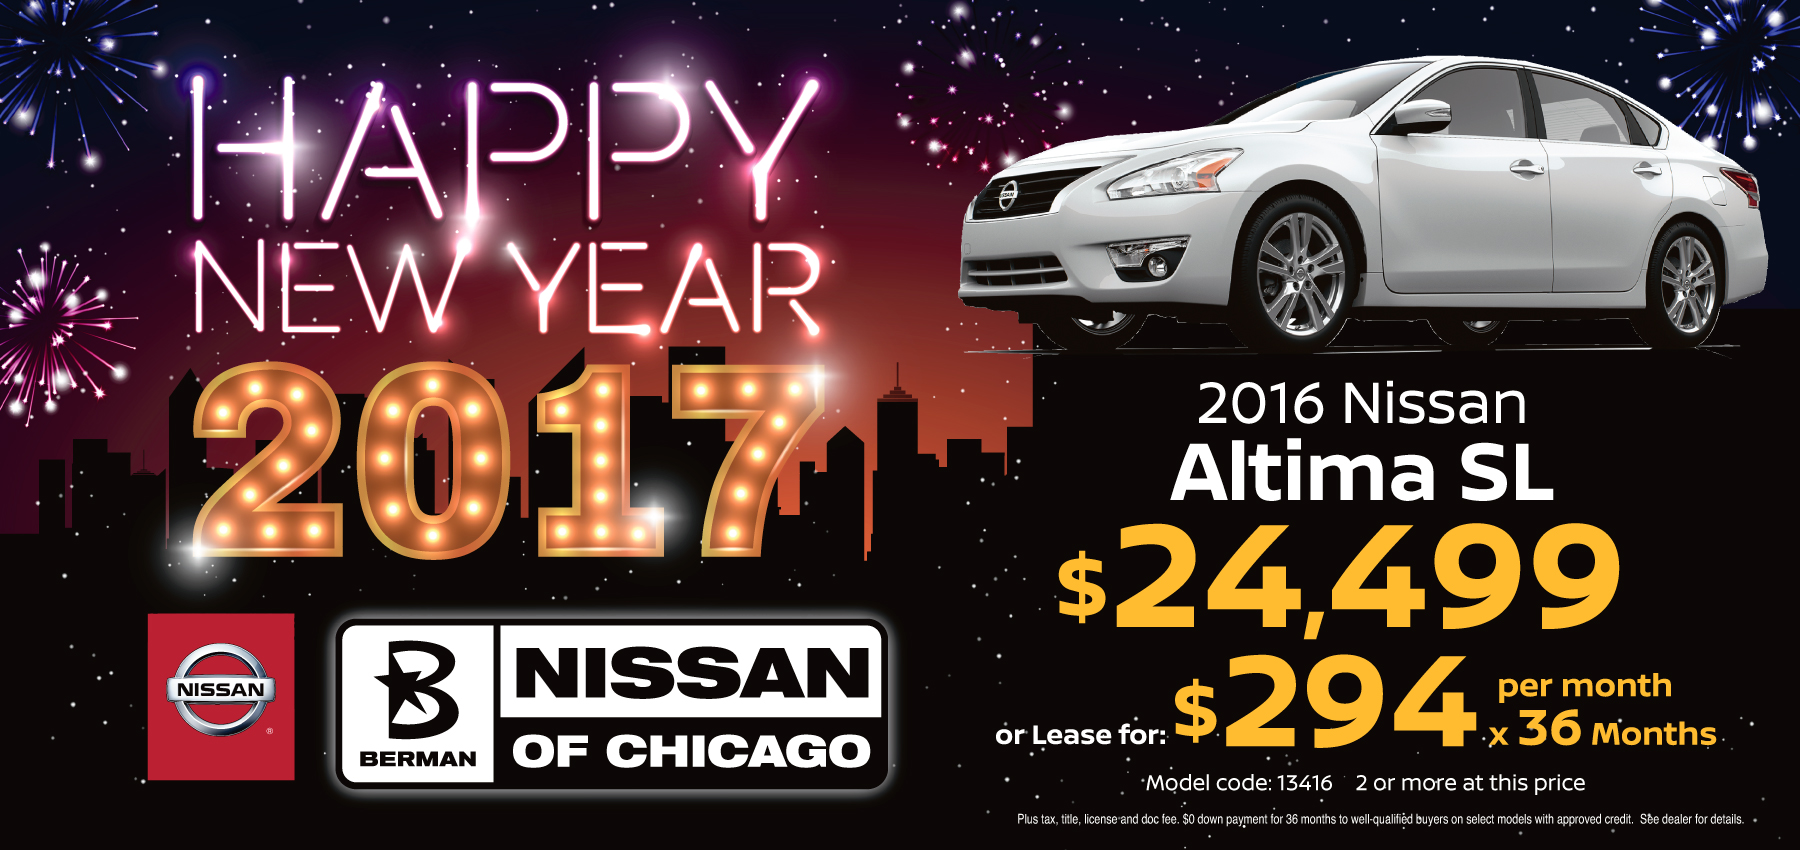 2016 Nissan Altima SL January Offer